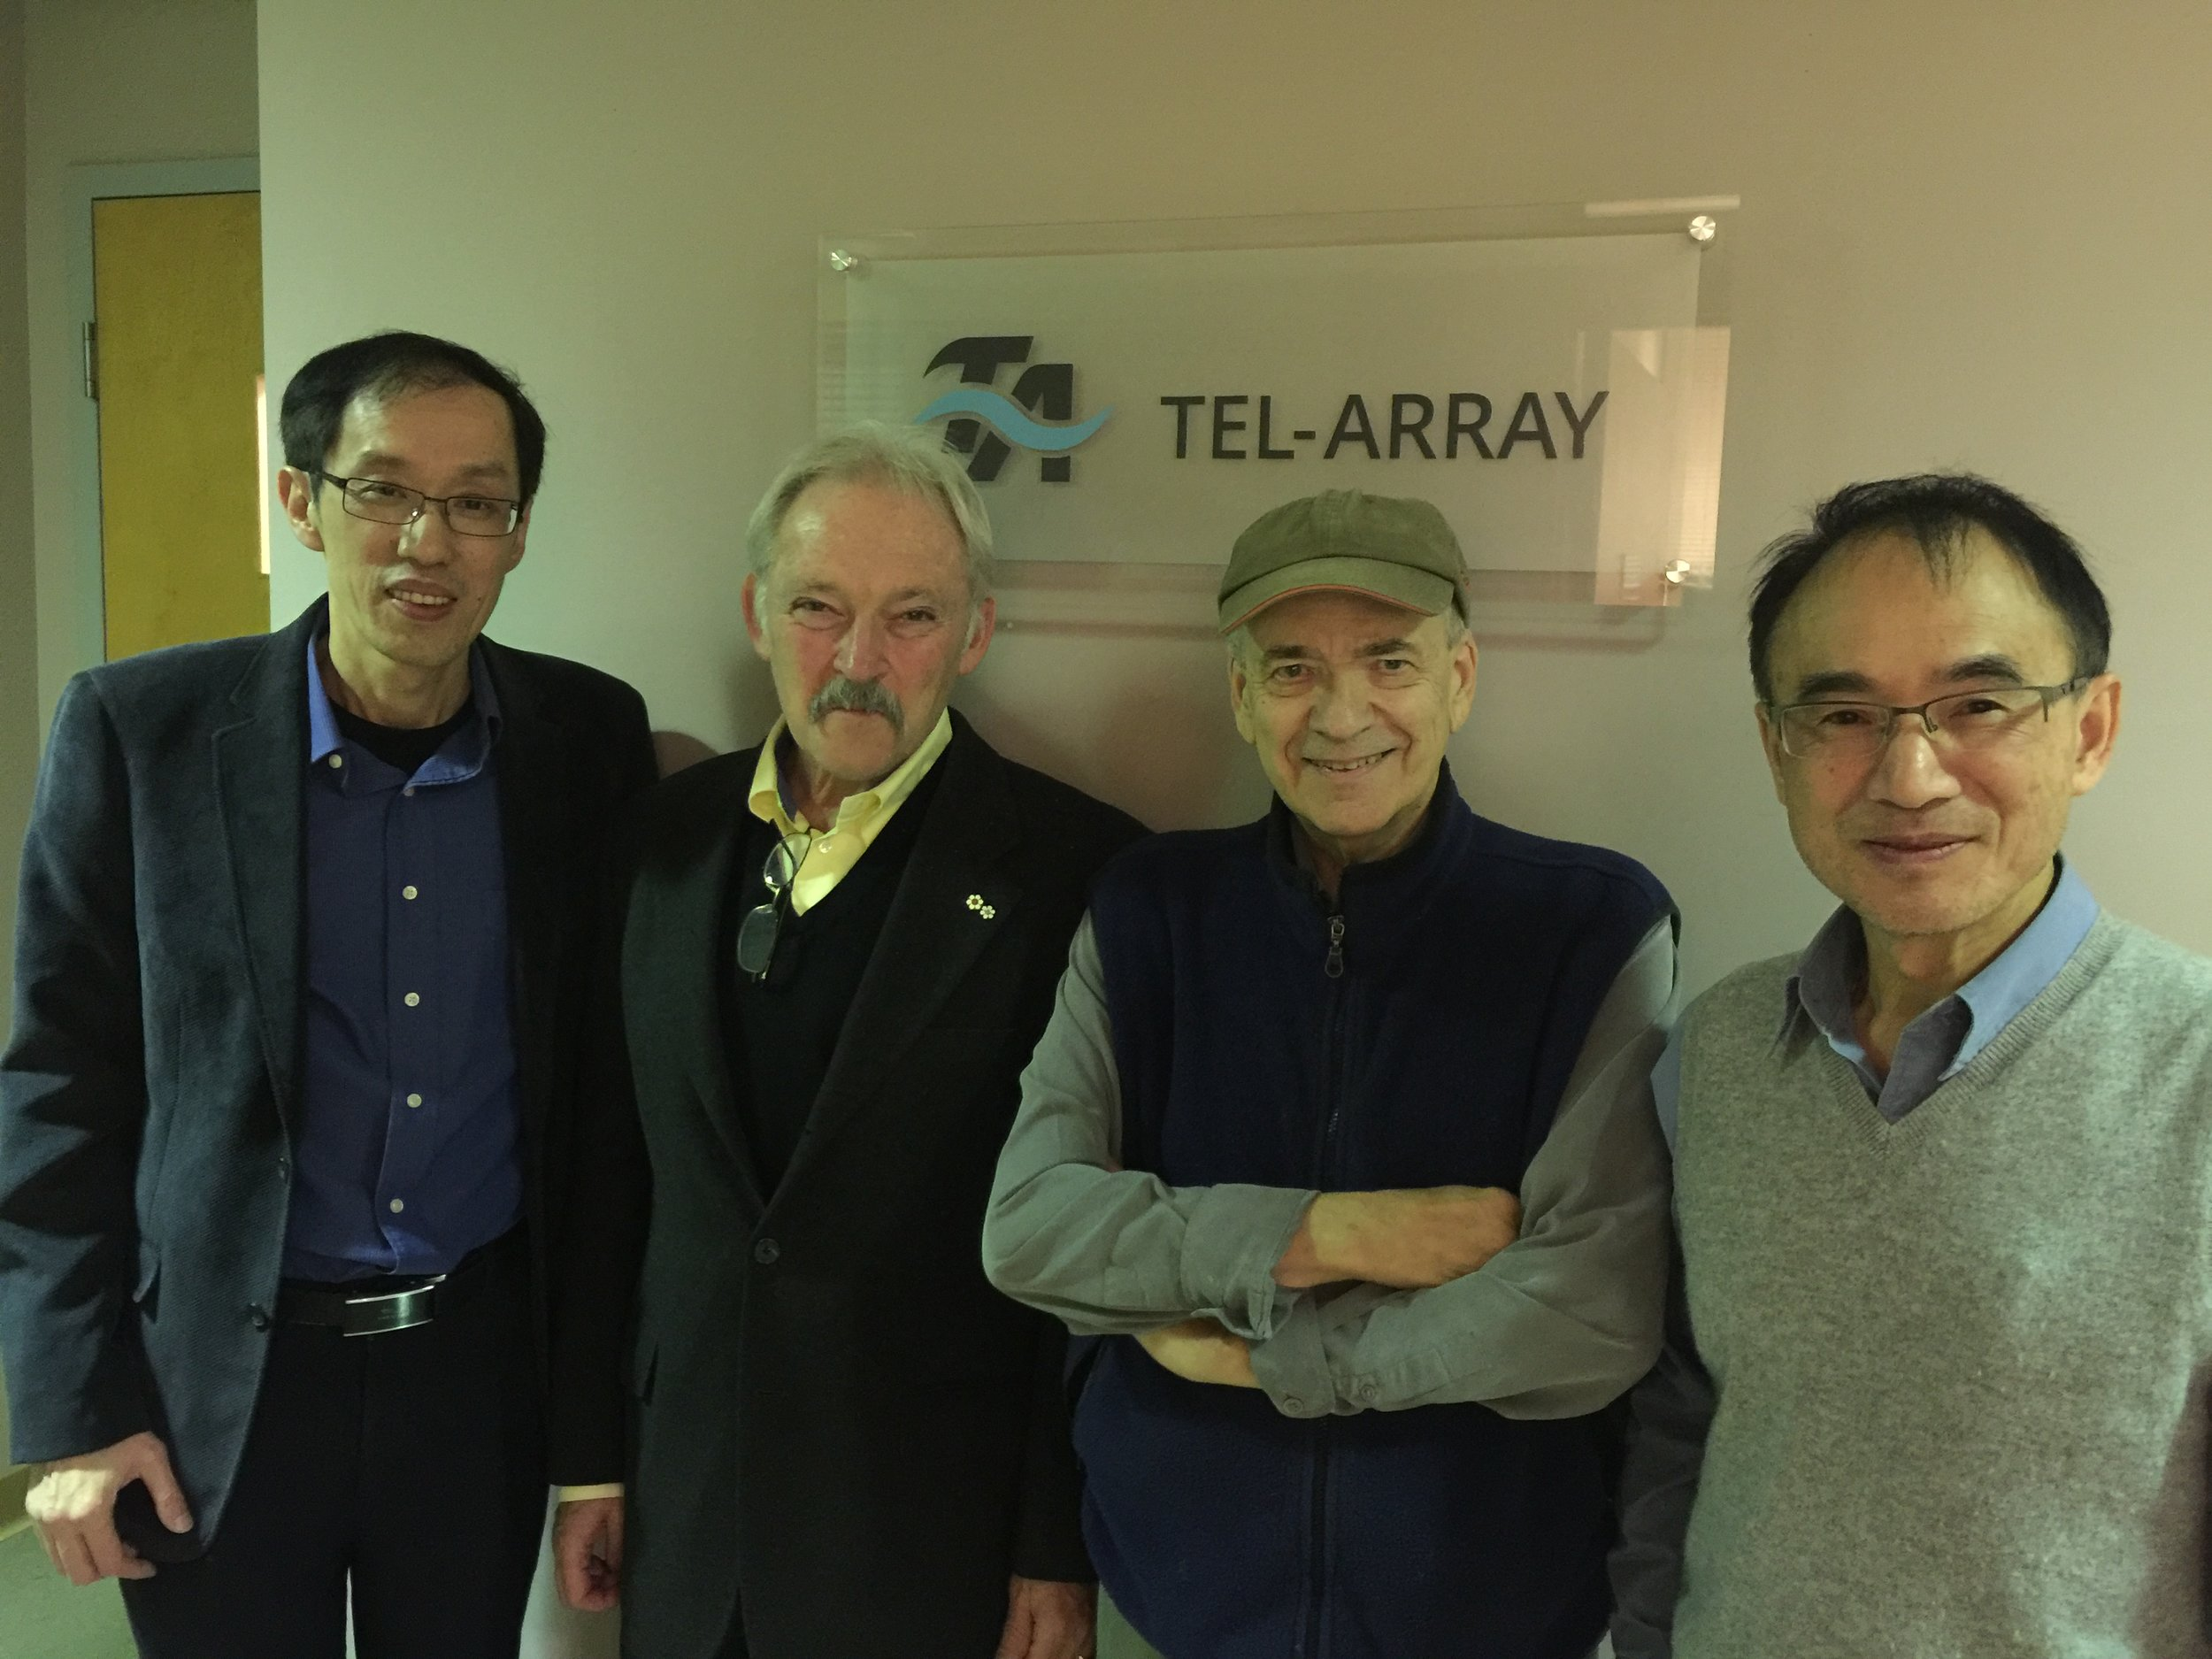 Dr. Max Cynader (2nd from the left) and Tel-Array co-founders and management